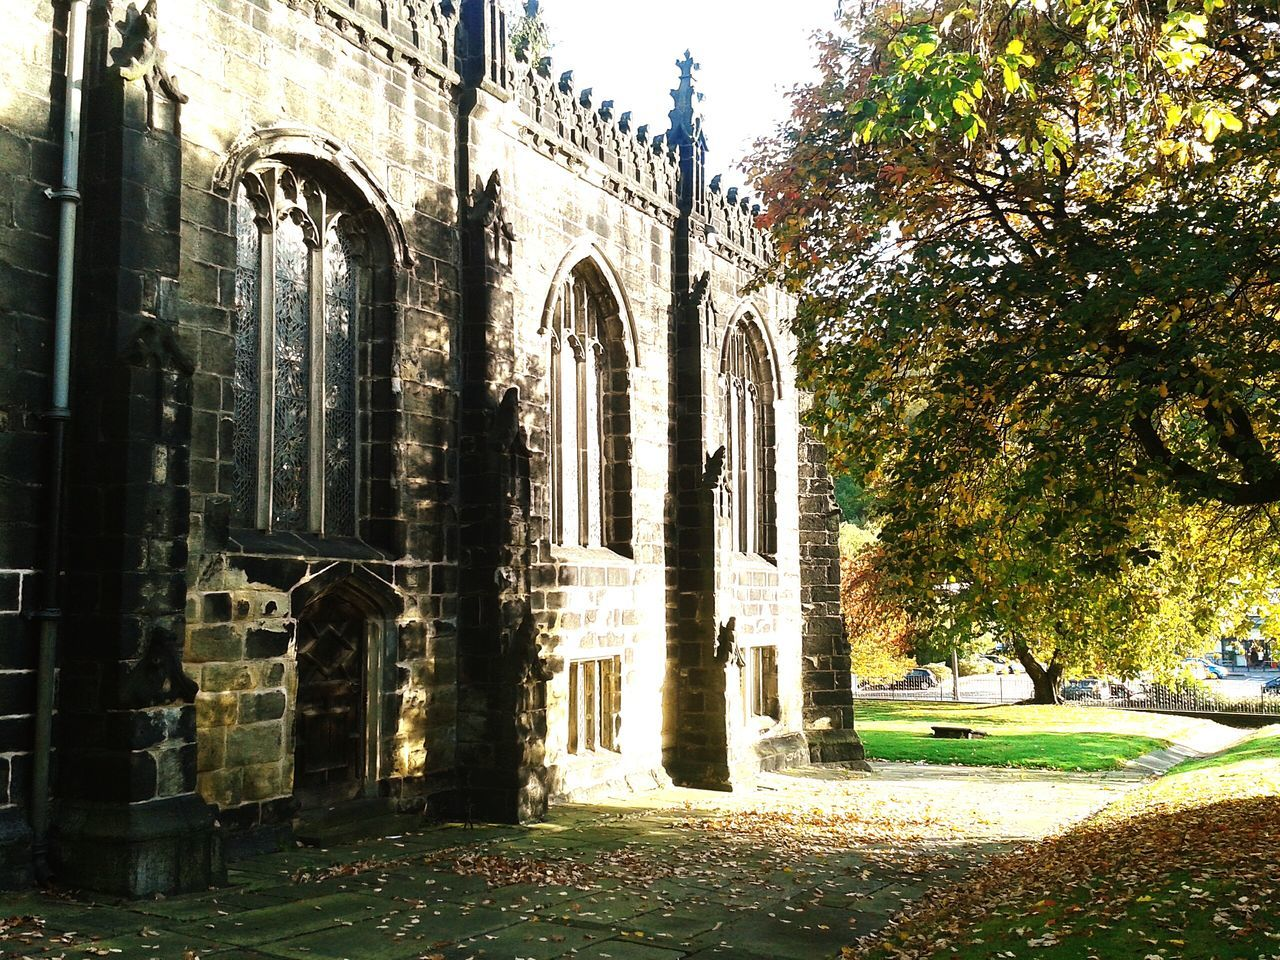 Sunday Mass Praying Praising The Lord Singing Praying Eyem Nature Lovers  Enjoying Life Autumn 2015 Check This Out Churches Architectural Detail Autumn Beautiful Stonework Medieval Gravestones Peaceful Place TreePorn Hello World Fallbeauty Sunlight And Shadow Leaded Windows Churchyard Oldbuildings Autumn Leaves Flagstones